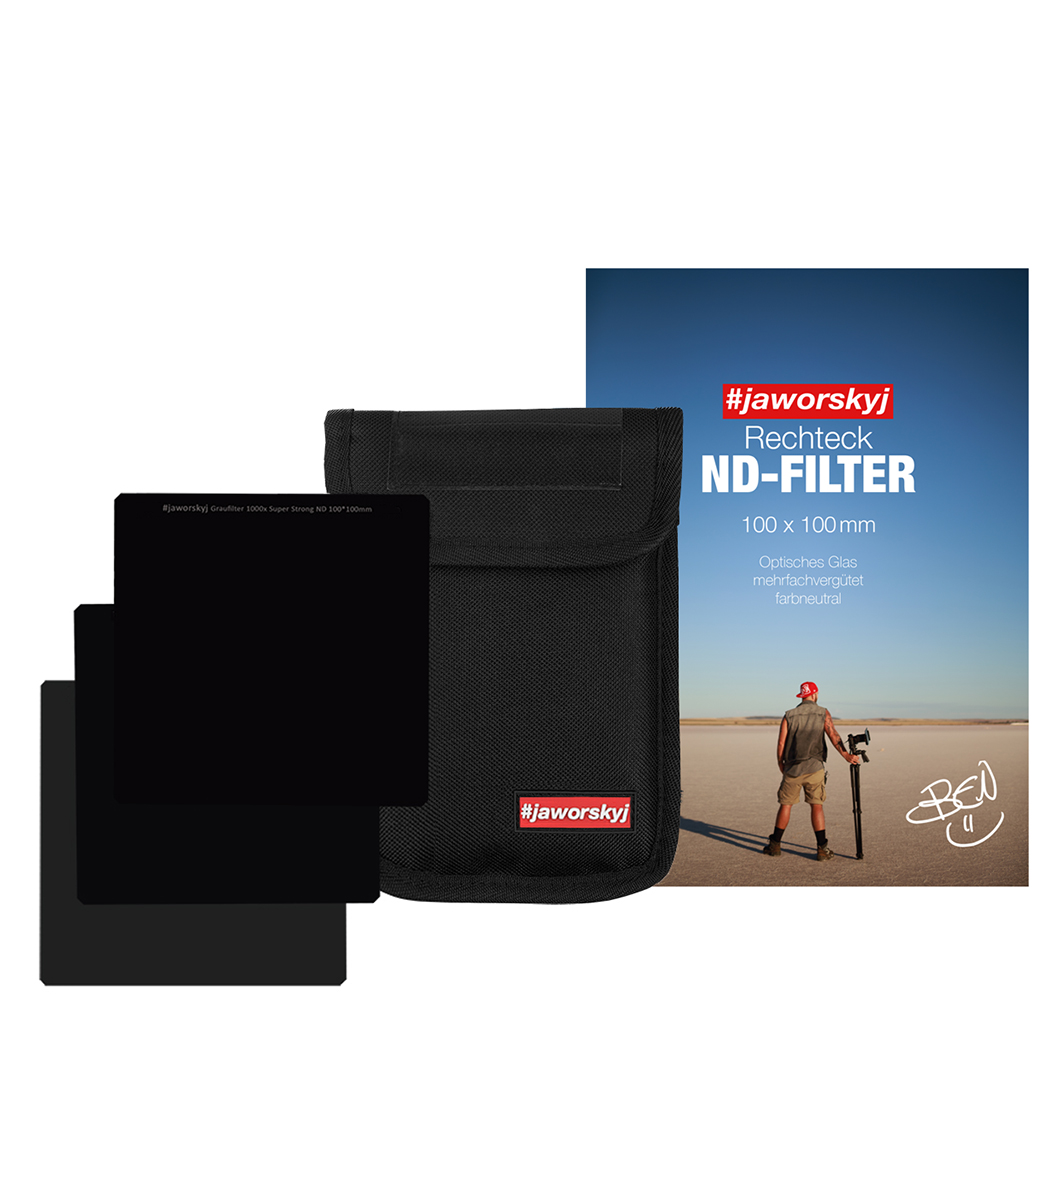 #jaworskyj Rechteck ND Filter Set